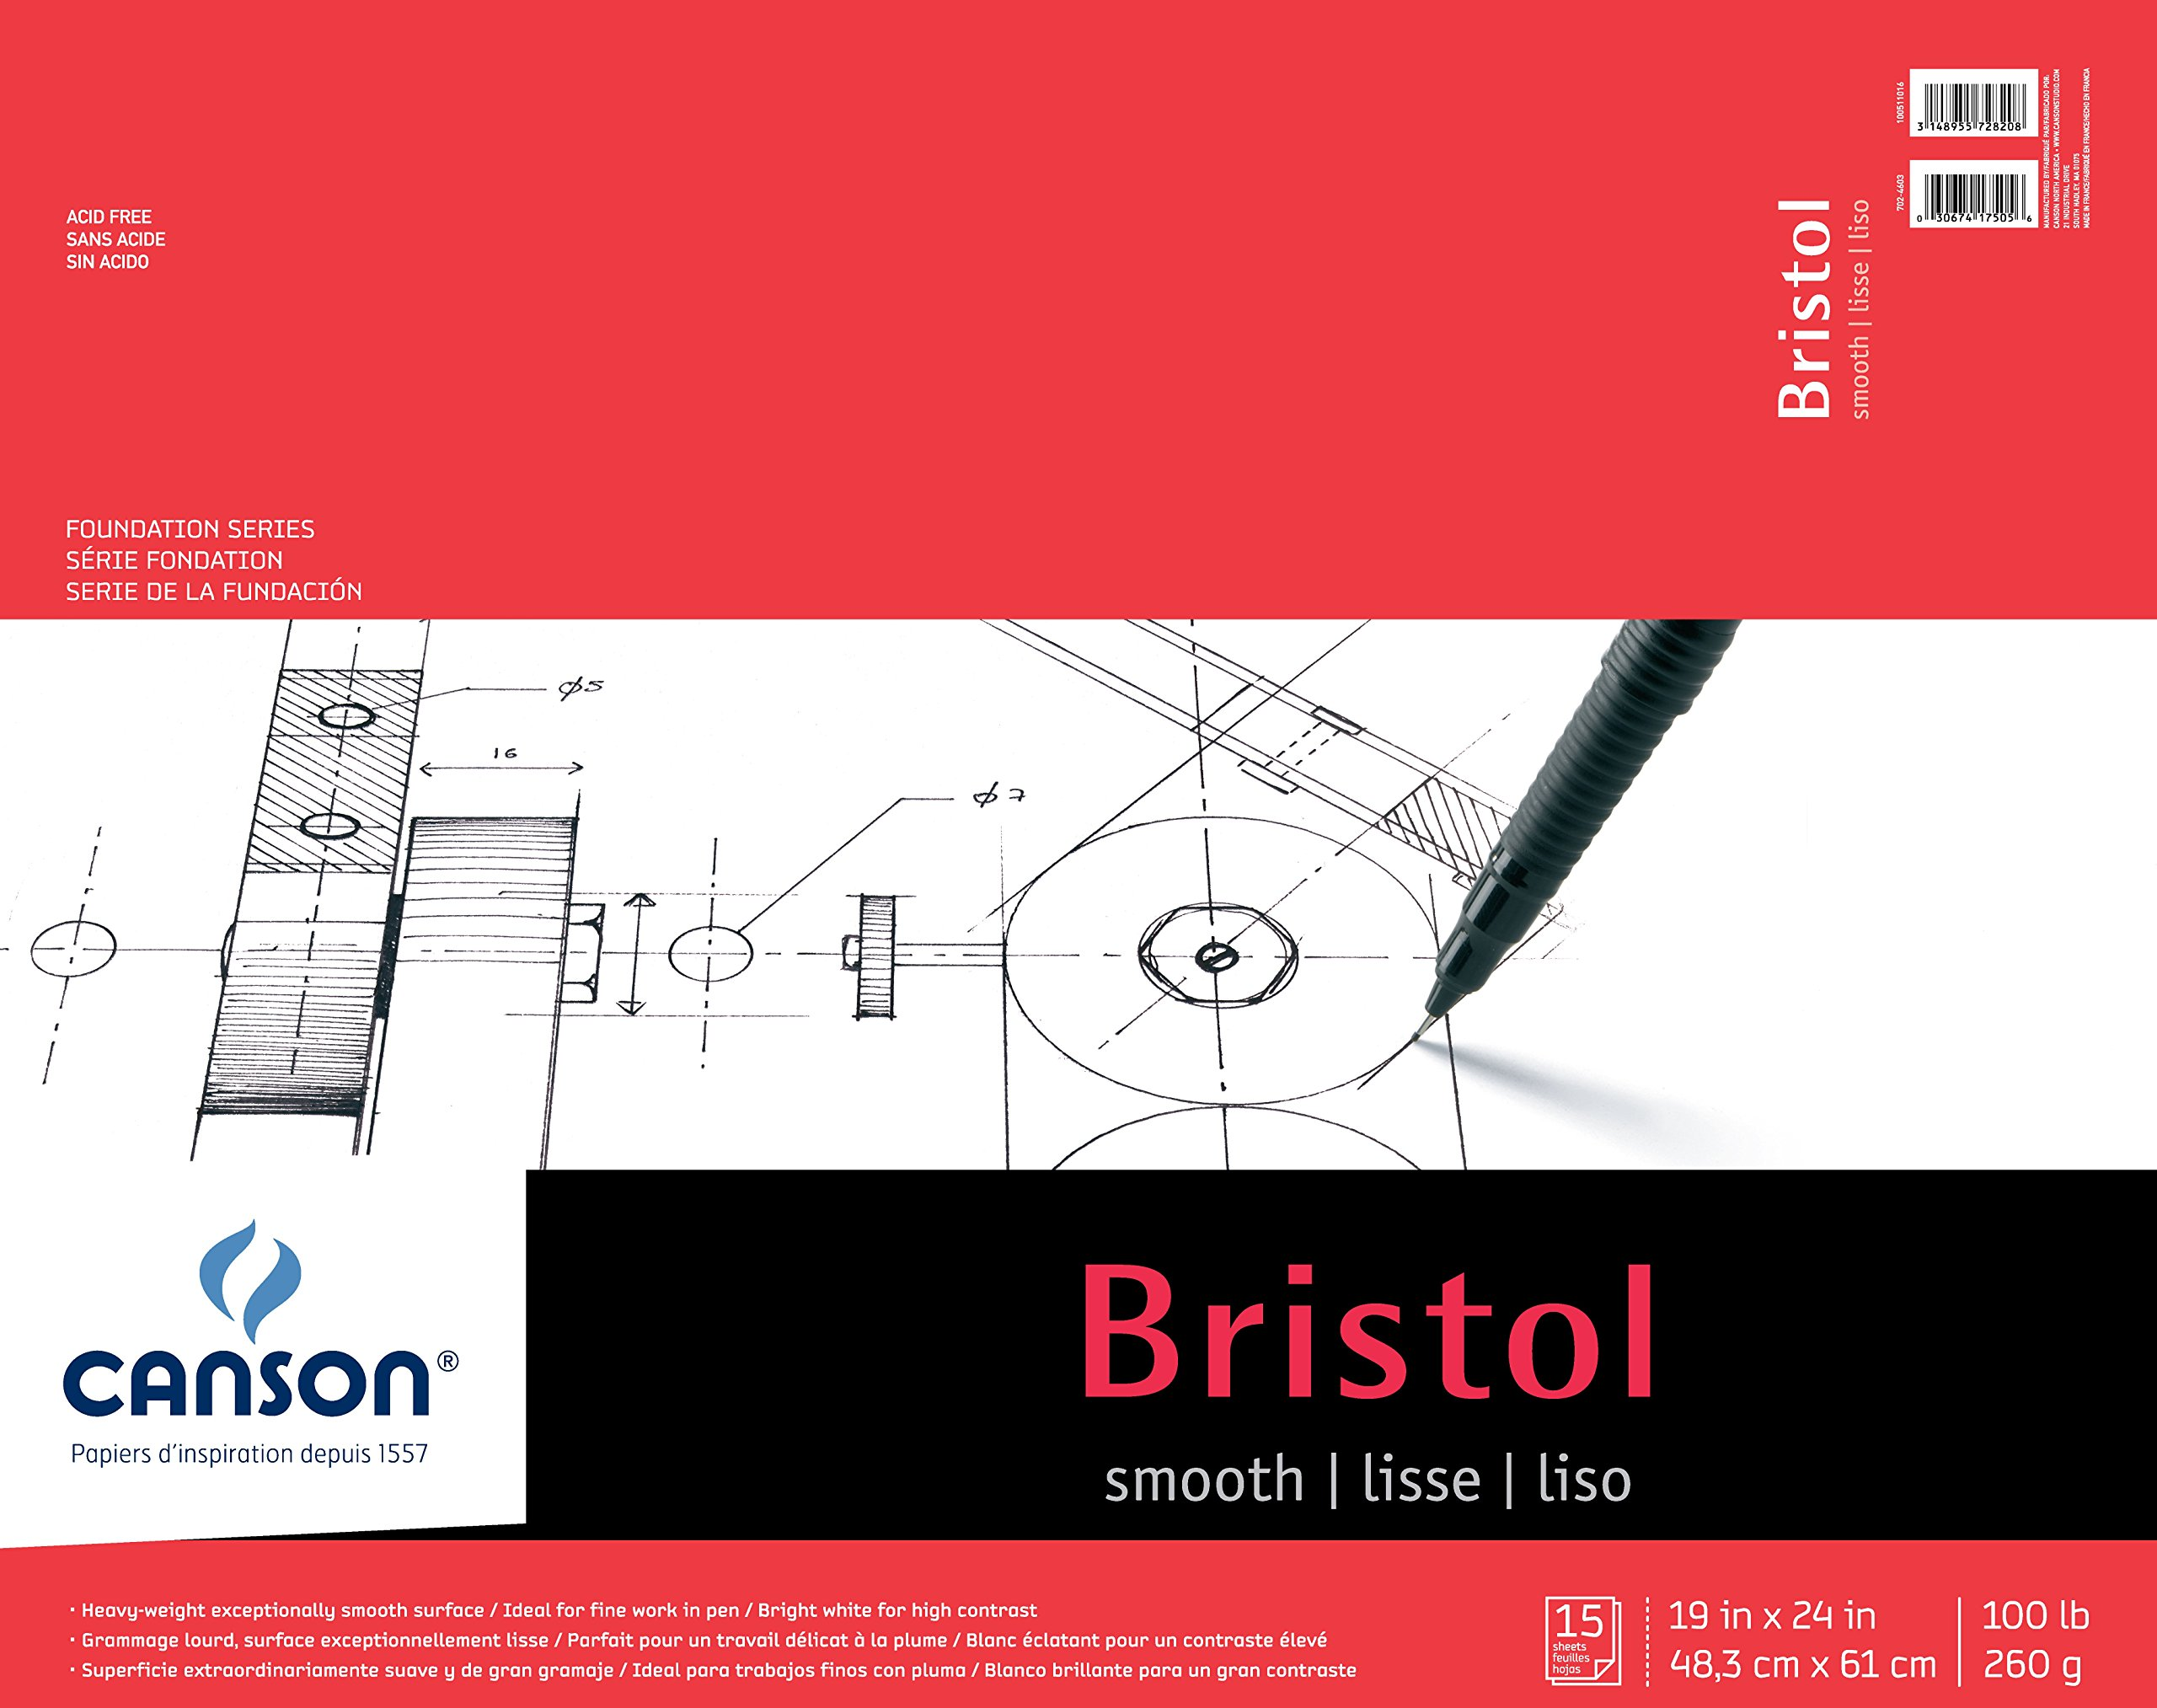 Canson Foundation Series Bristol Paper Pad, Heavyweight Paper for Pen, Smooth Finish, Fold Over, 100 Pound, 19 x 24 Inch, Bright White, 15 Sheets